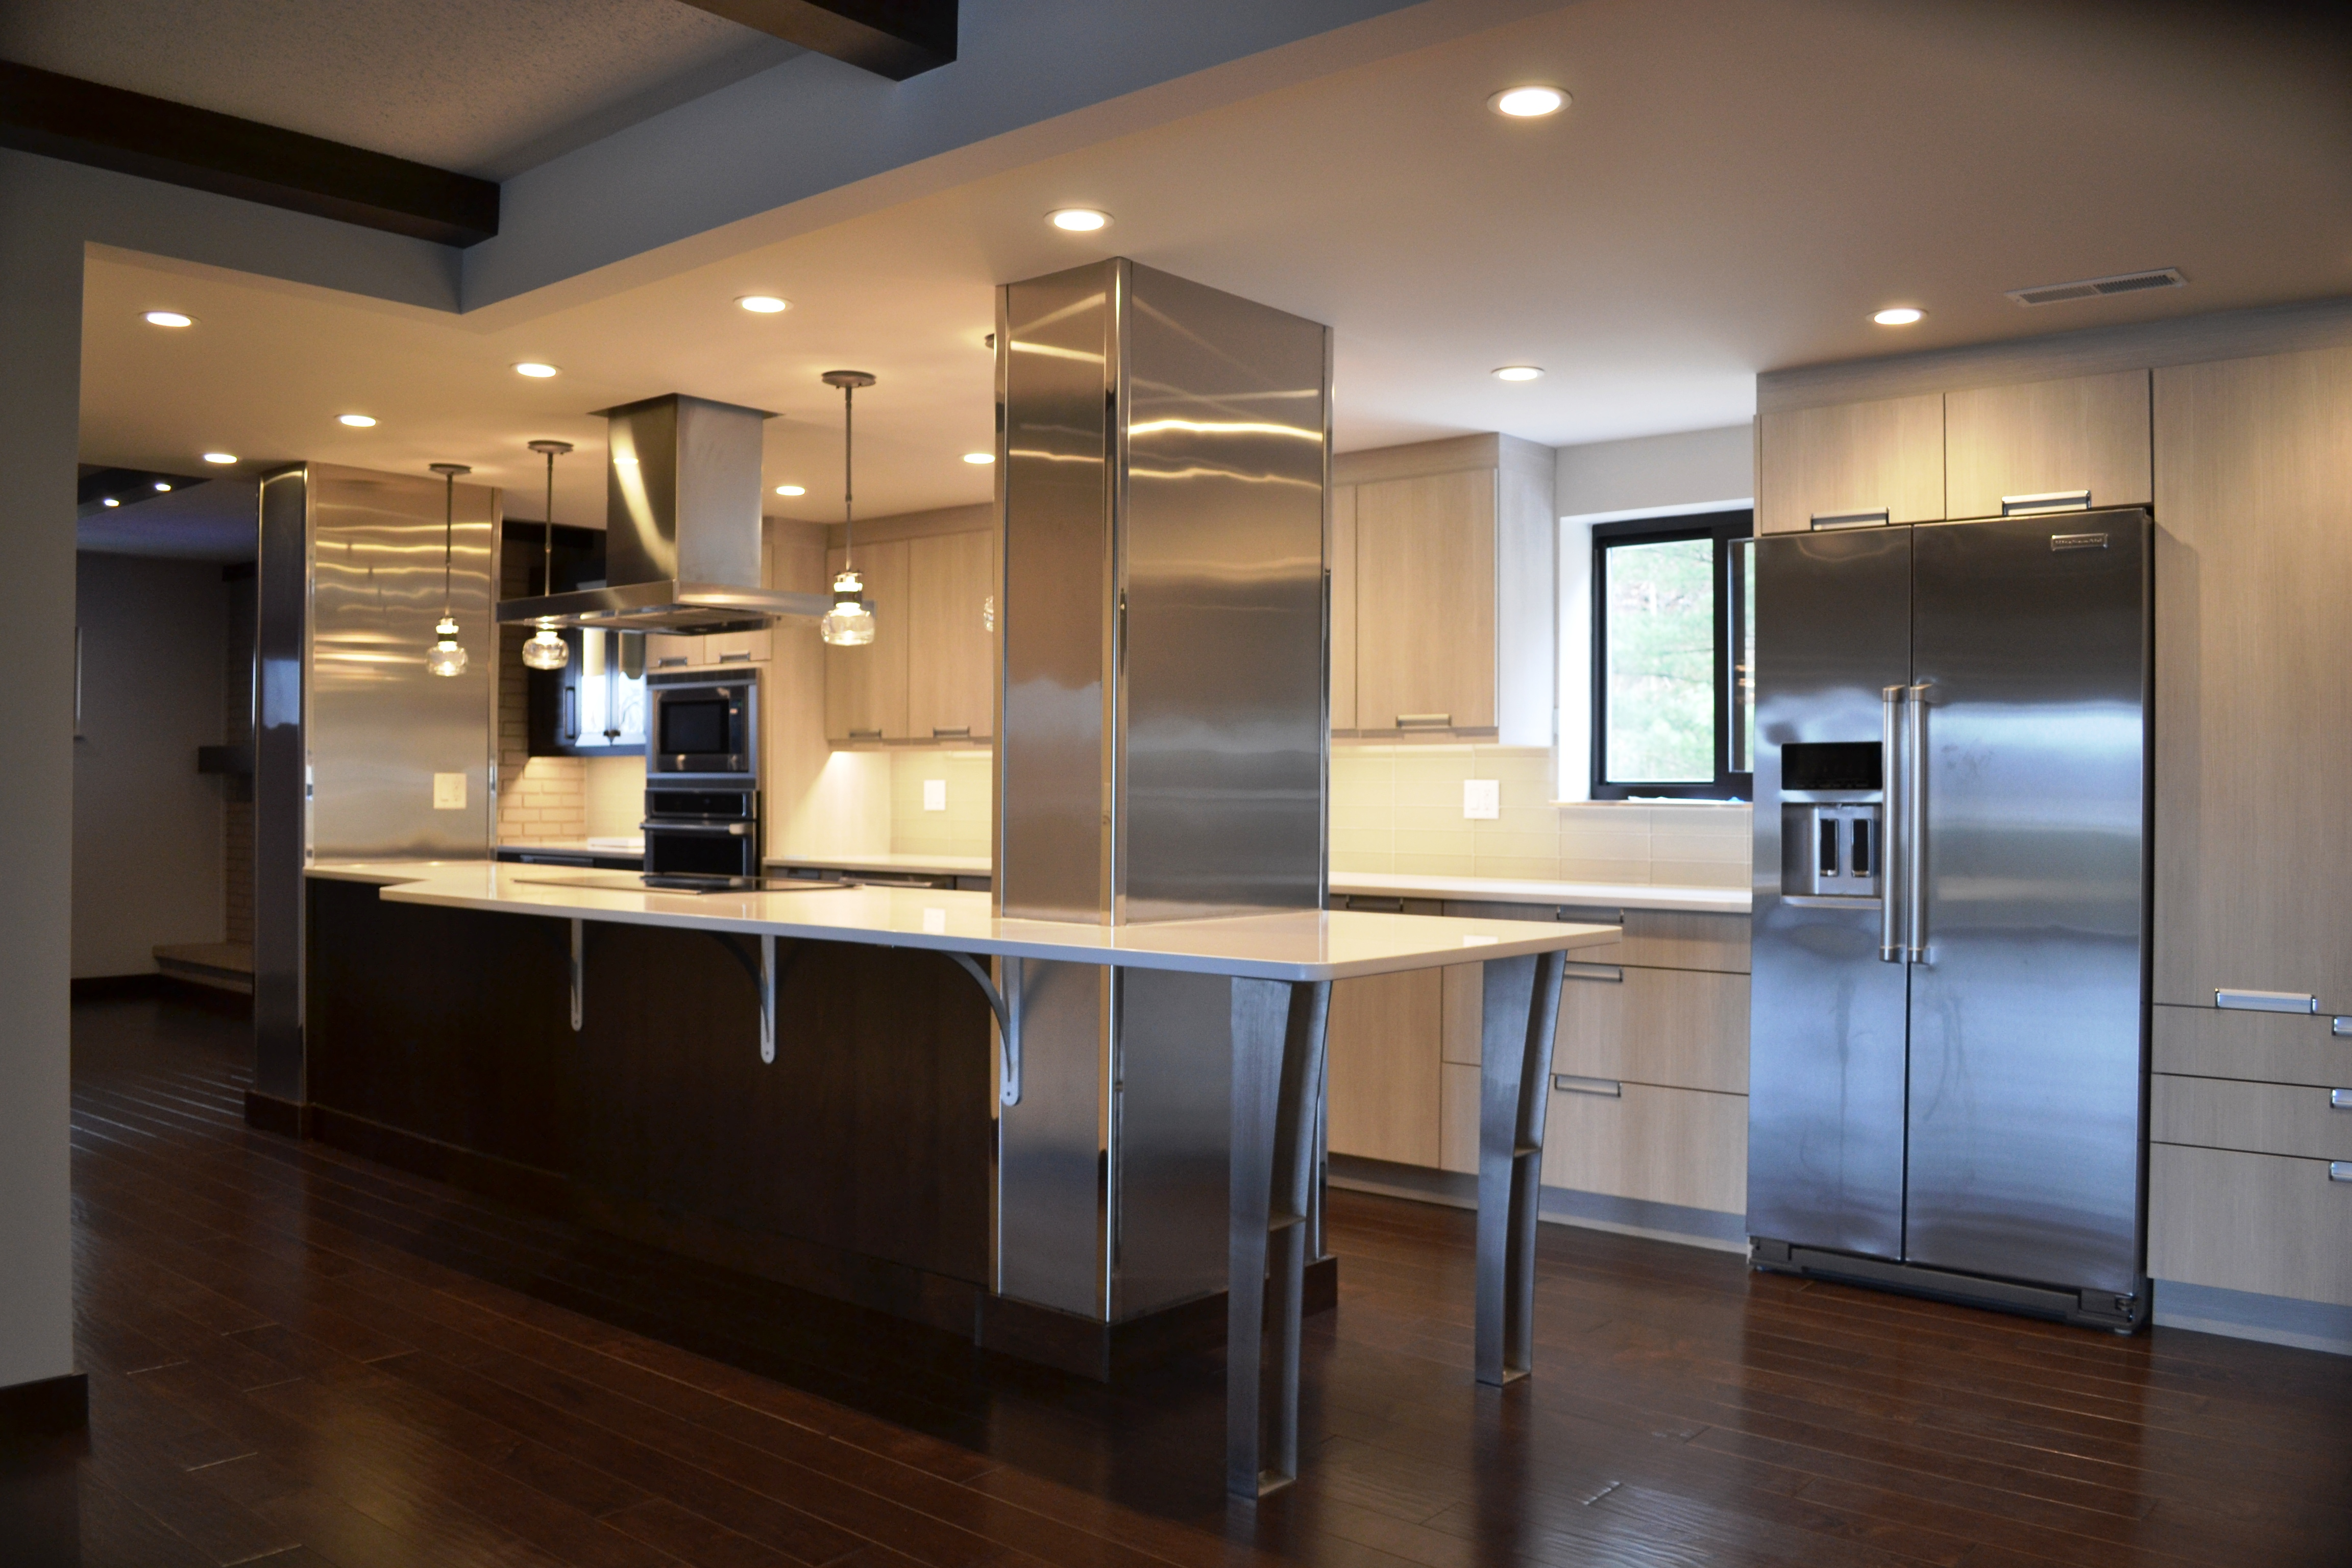 Creative Kitchens | CountertopResource.com A Resource for ...